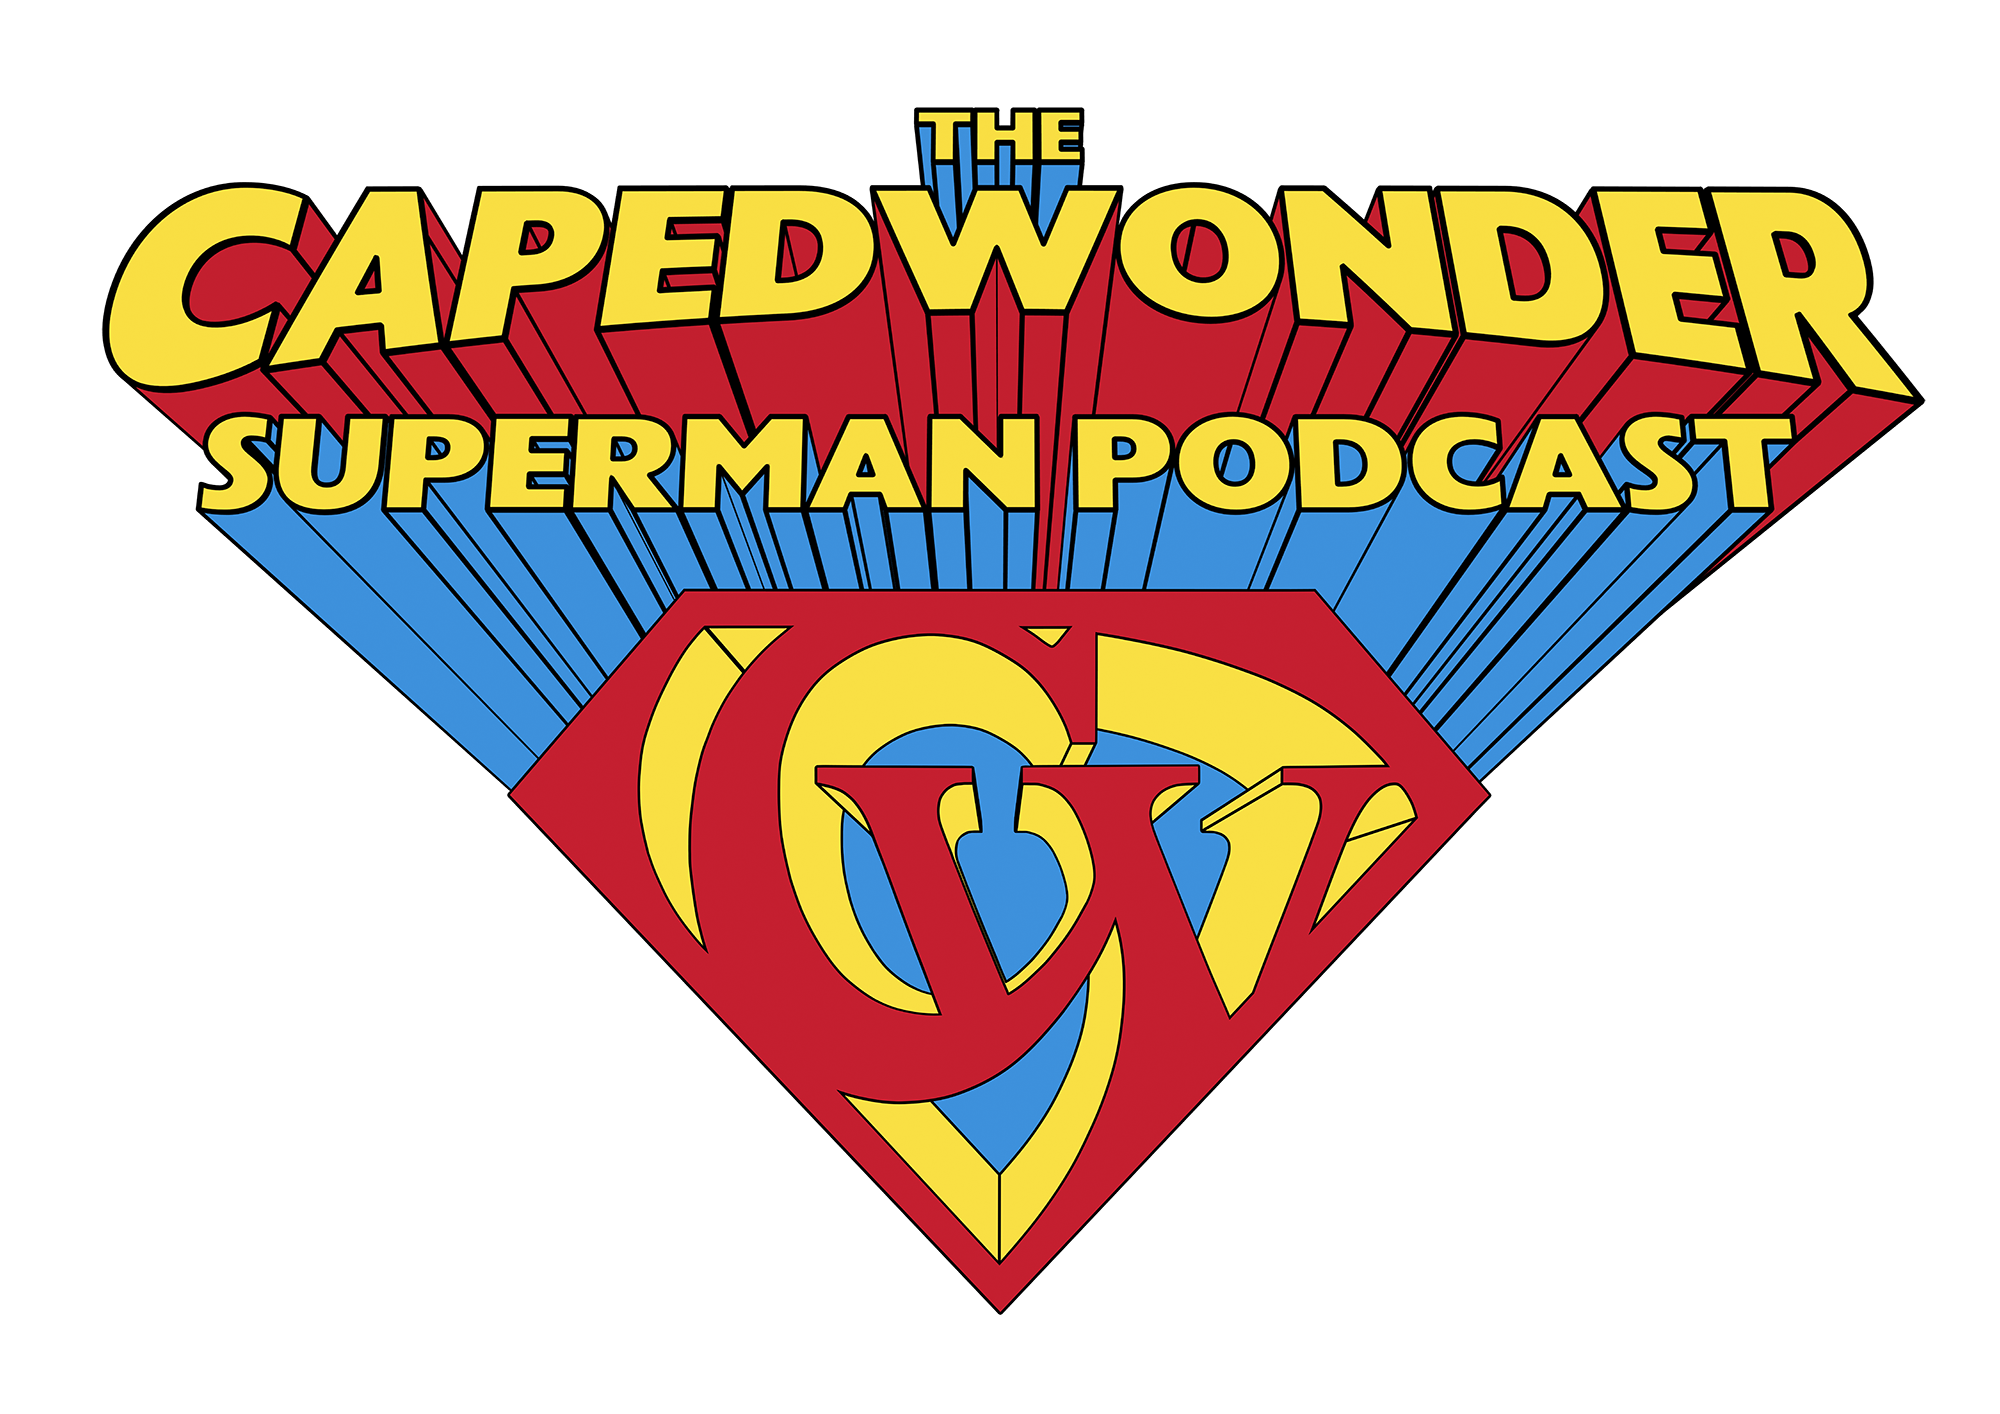 CW PODCAST SHIELD 3D TRANSPARENT